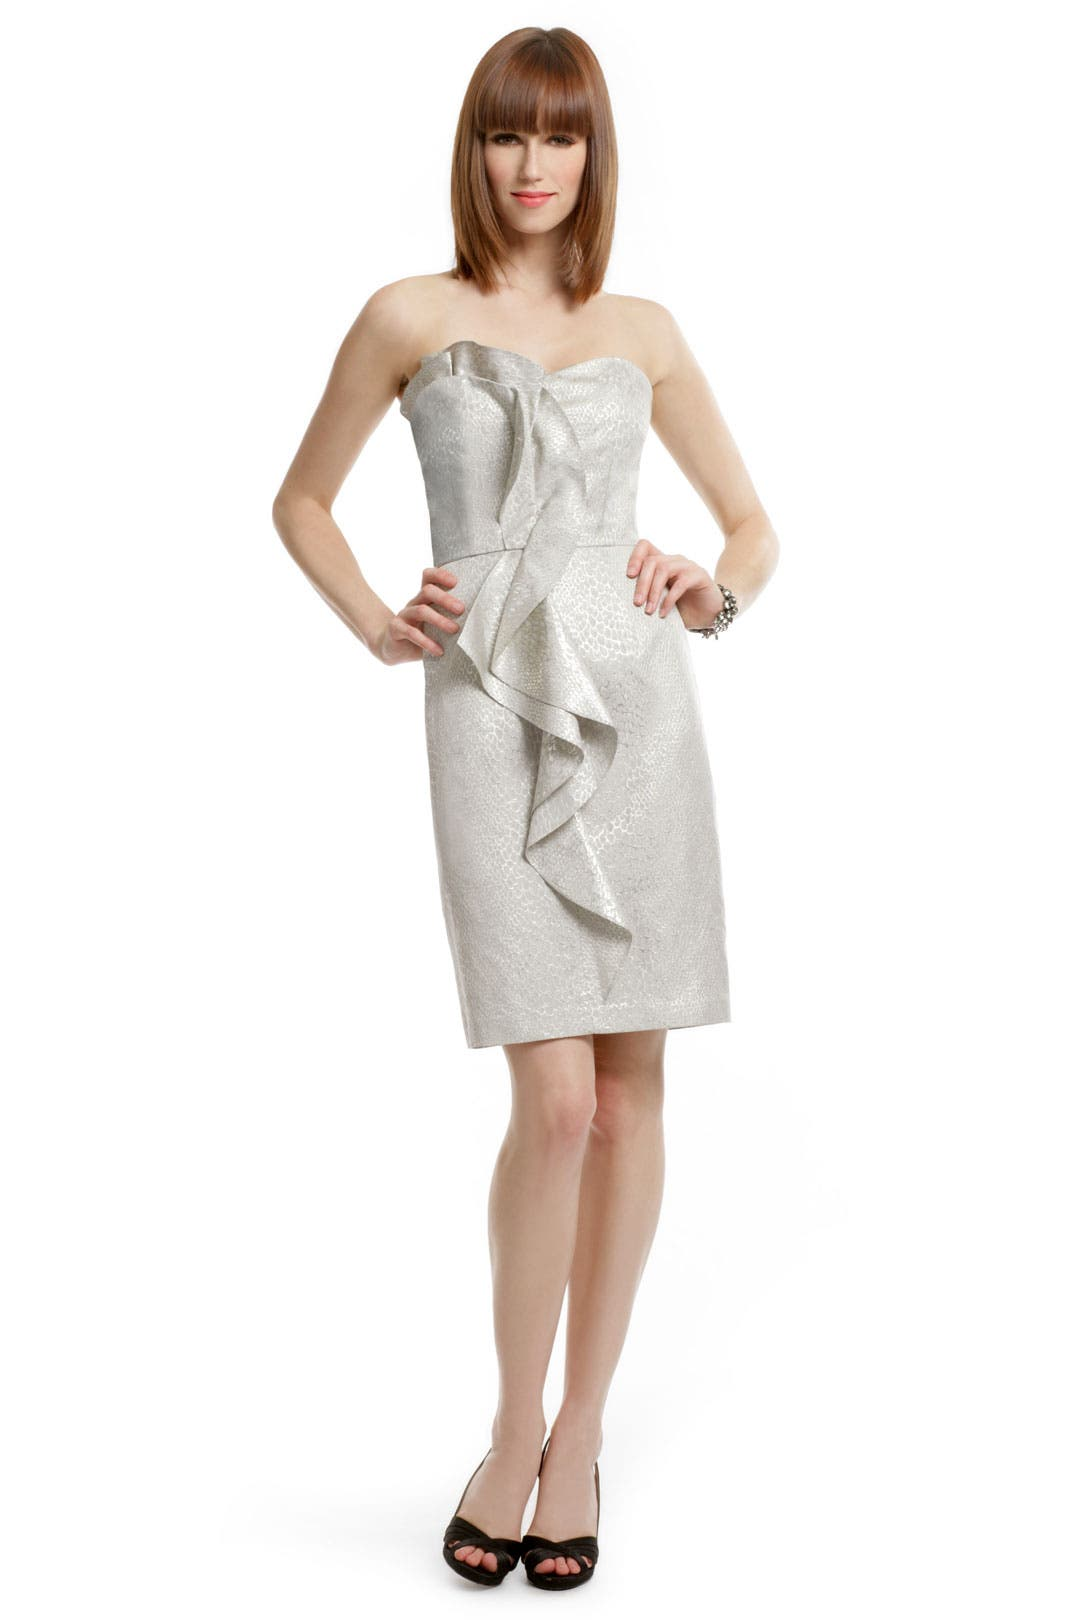 Silvery Sass Dress by David Meister